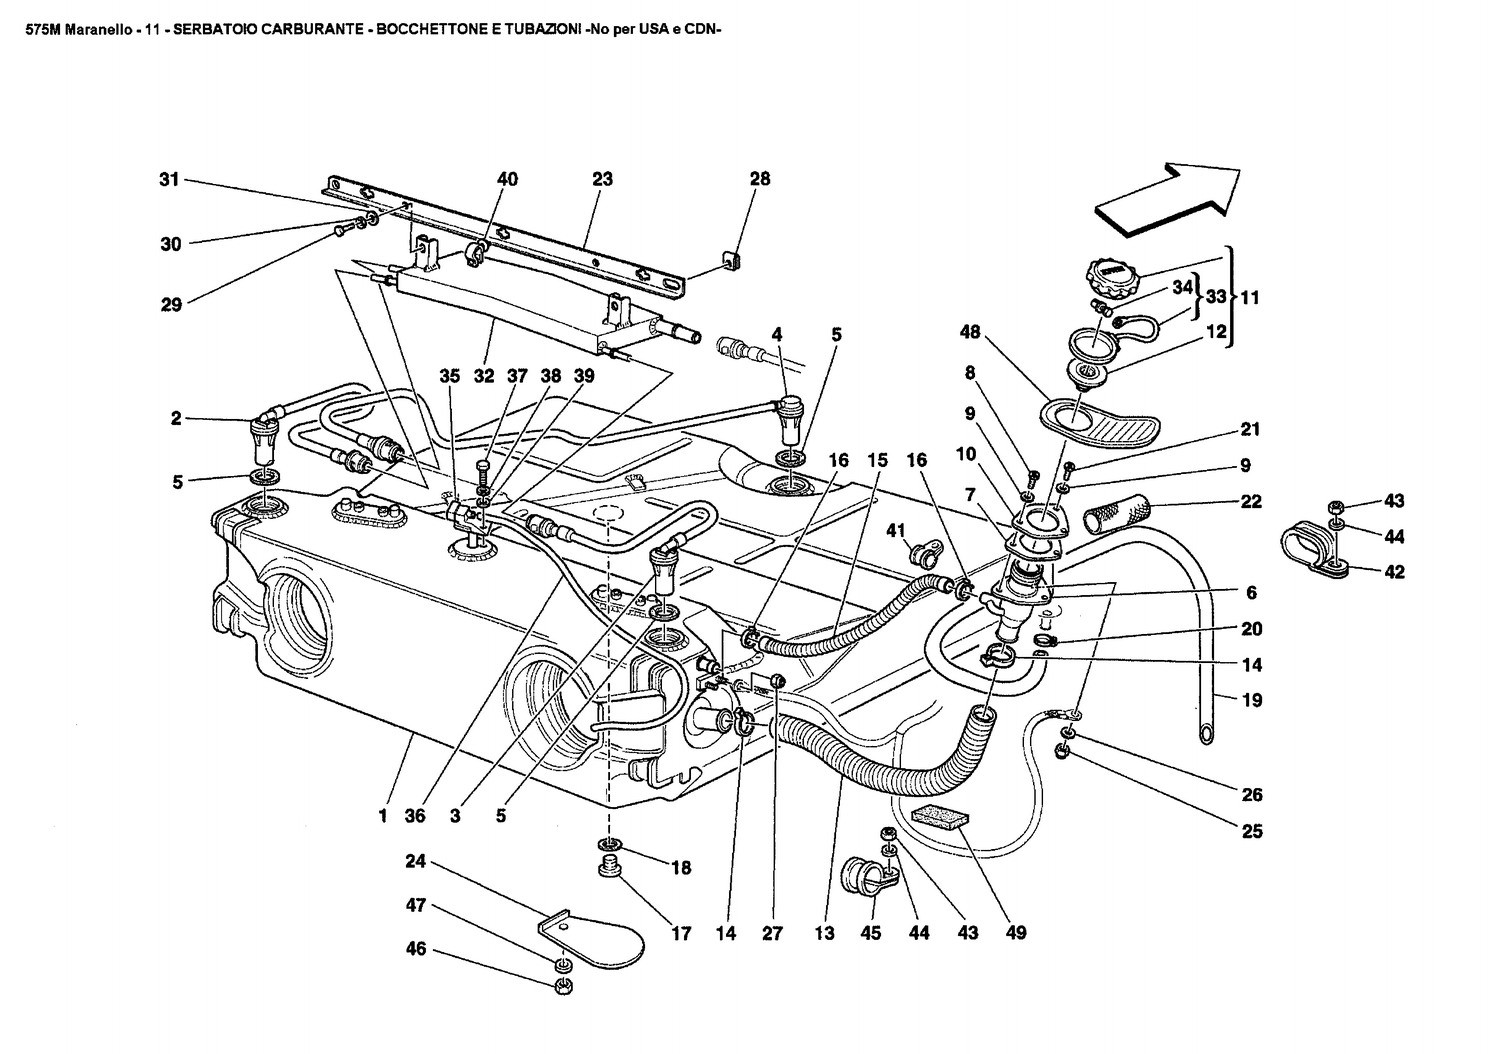 FUEL TANK - UNION AND PIPING -Not for USA and CDN-